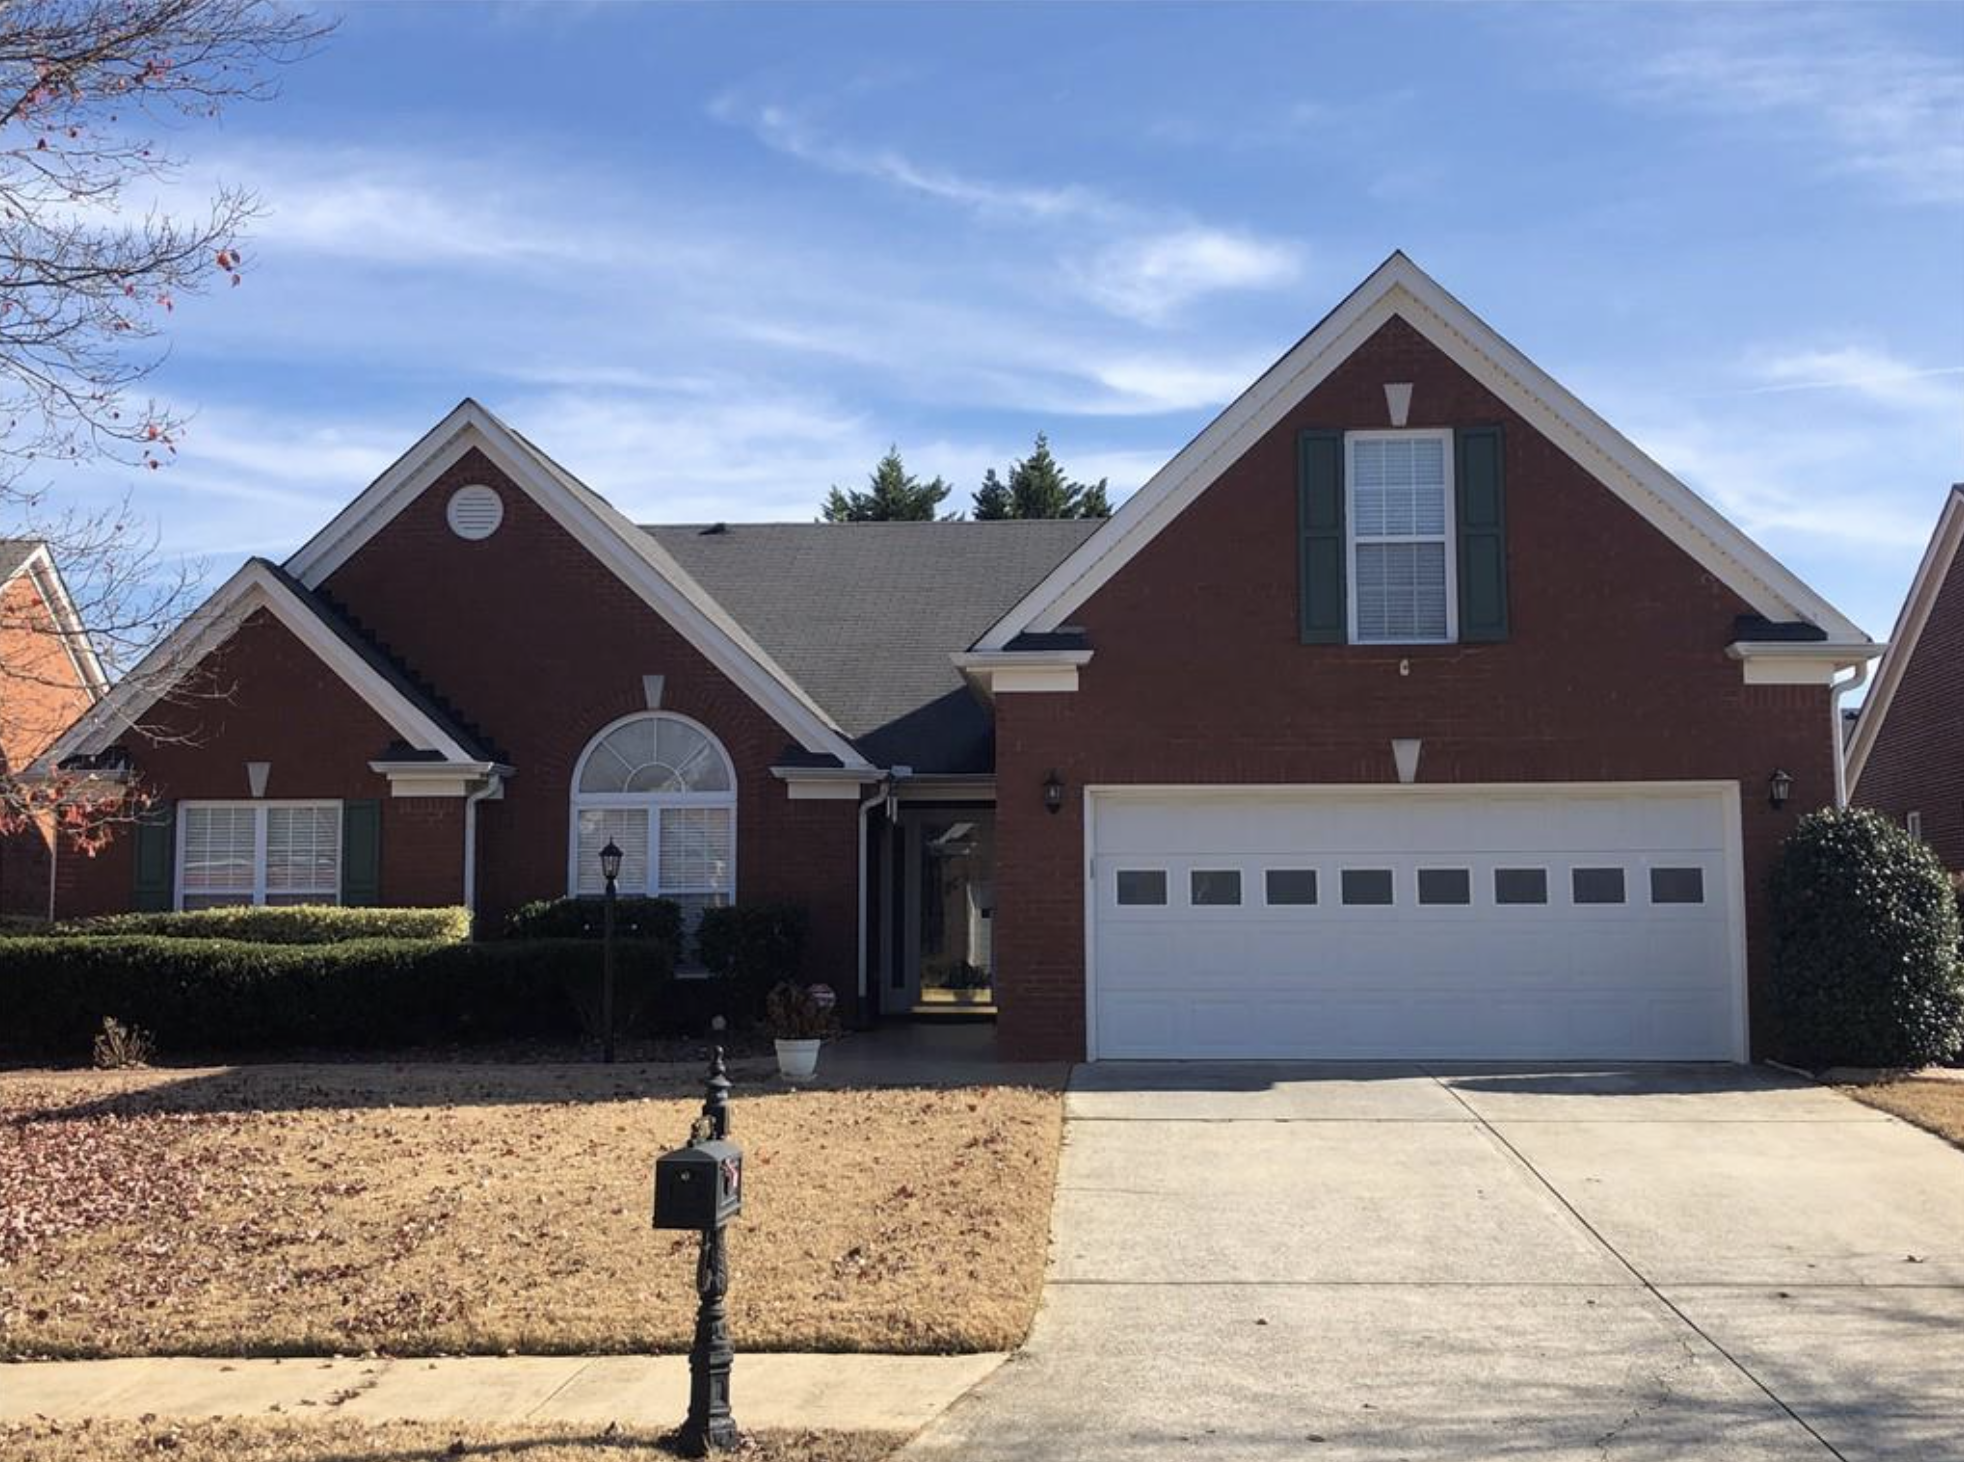 570 Groveland Parkway, Lawrenceville, GA 30046 - EXCLUSIVE RU4 LISTING - NOT ON ZILLOW!